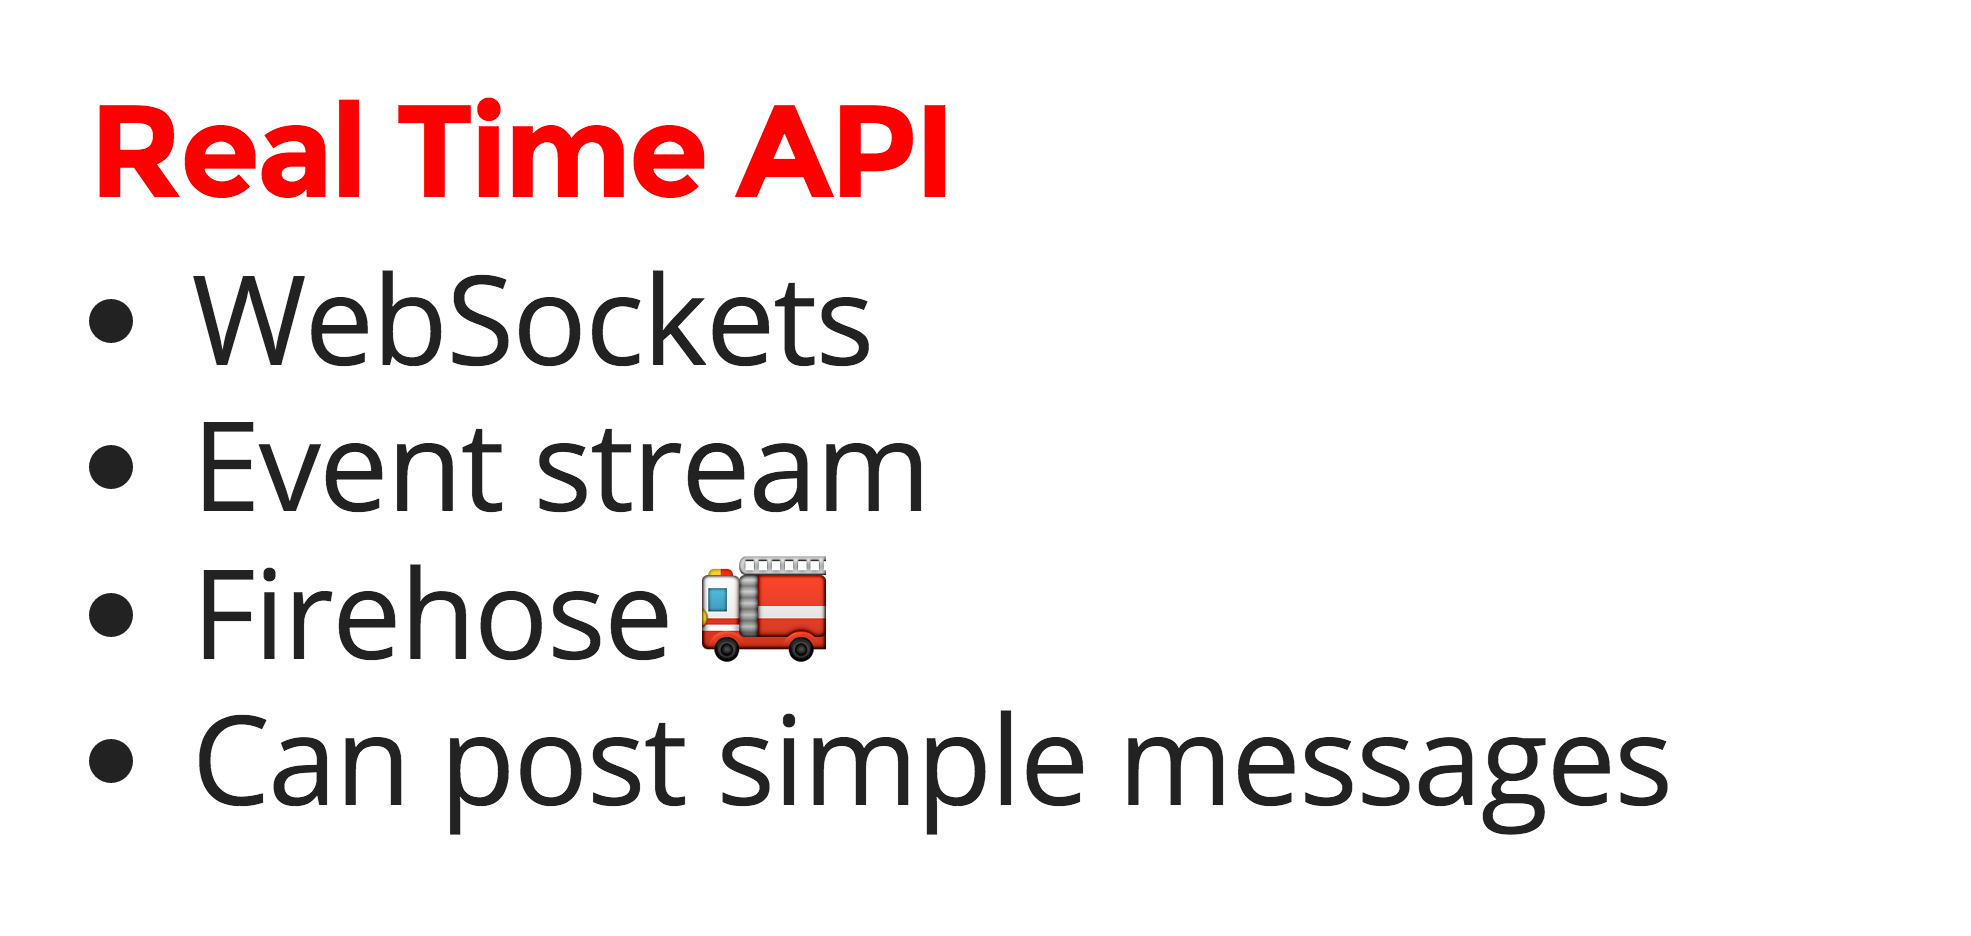 Slack Real Time Messaging API notes